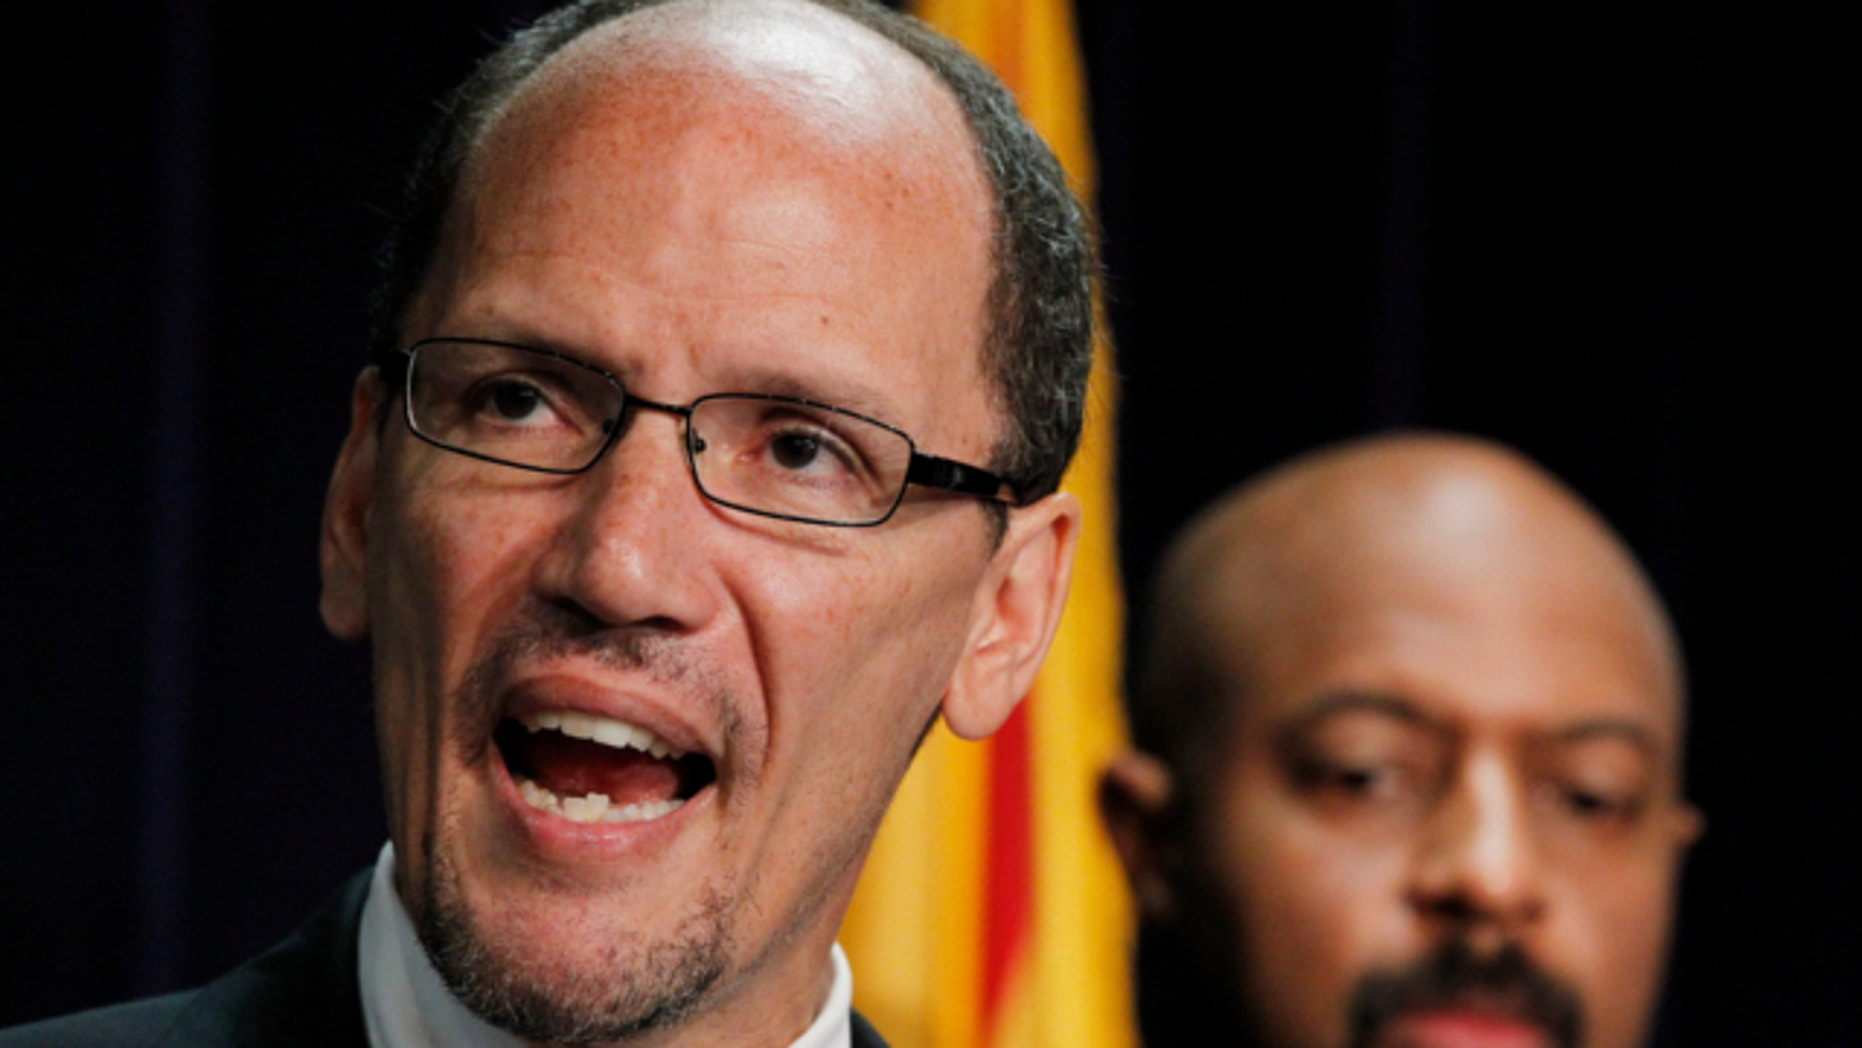 May 10, 2012: United States Assistant Attorney General Thomas Perez, left, is joined by Deputy Assistant Attorney General for Civil Rights, Roy Austin, during a news conference in Phoenix.